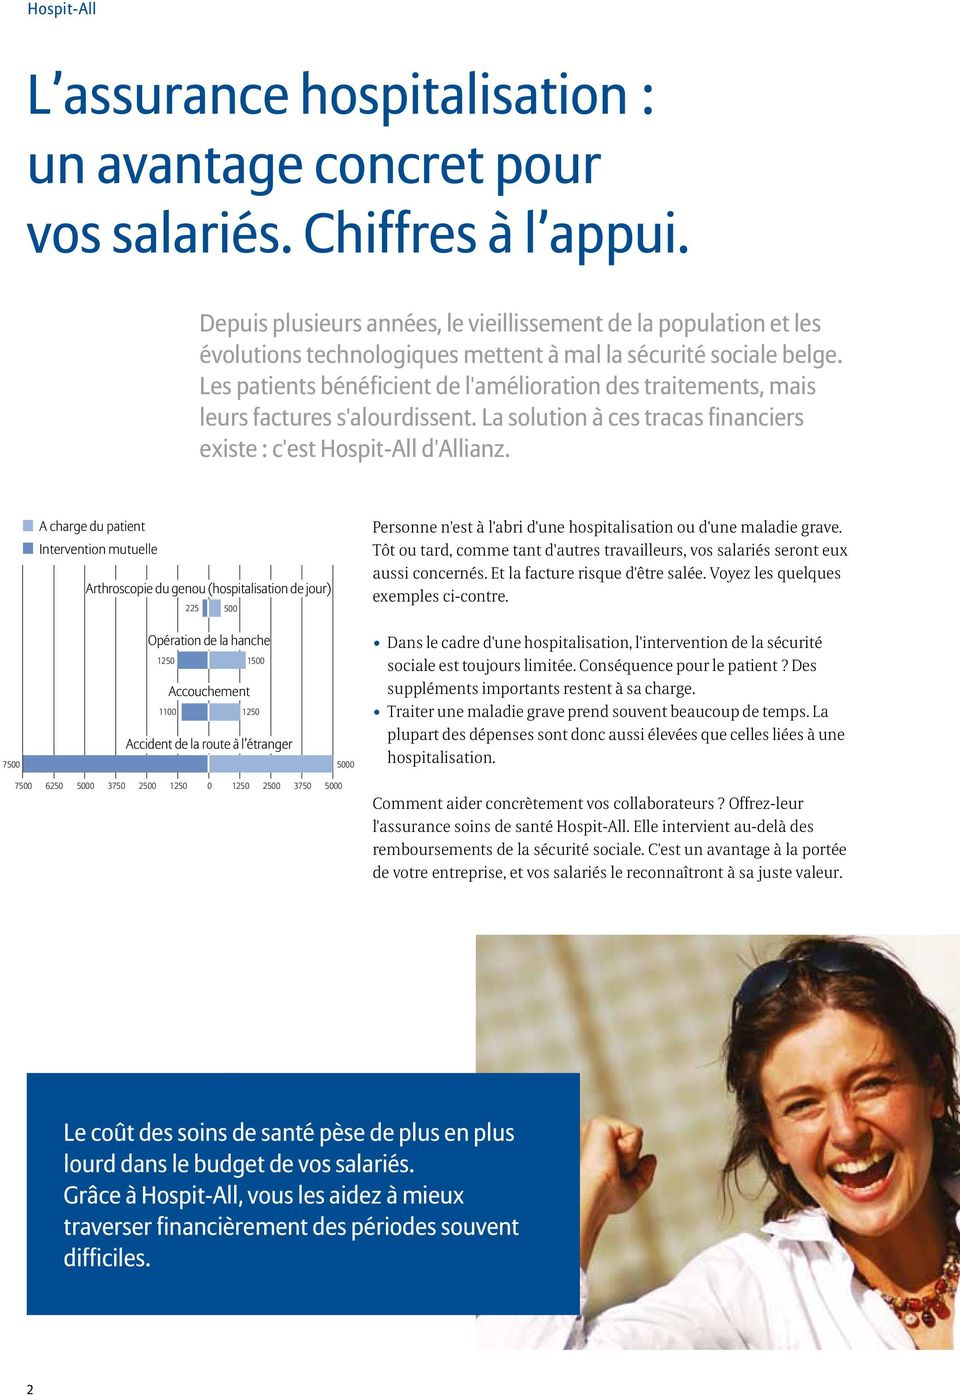 Les patients bénéficient de l'amélioration des traitements, mais leurs factures s'alourdissent. La solution à ces tracas financiers existe : c'est Hospit-All d'allianz.